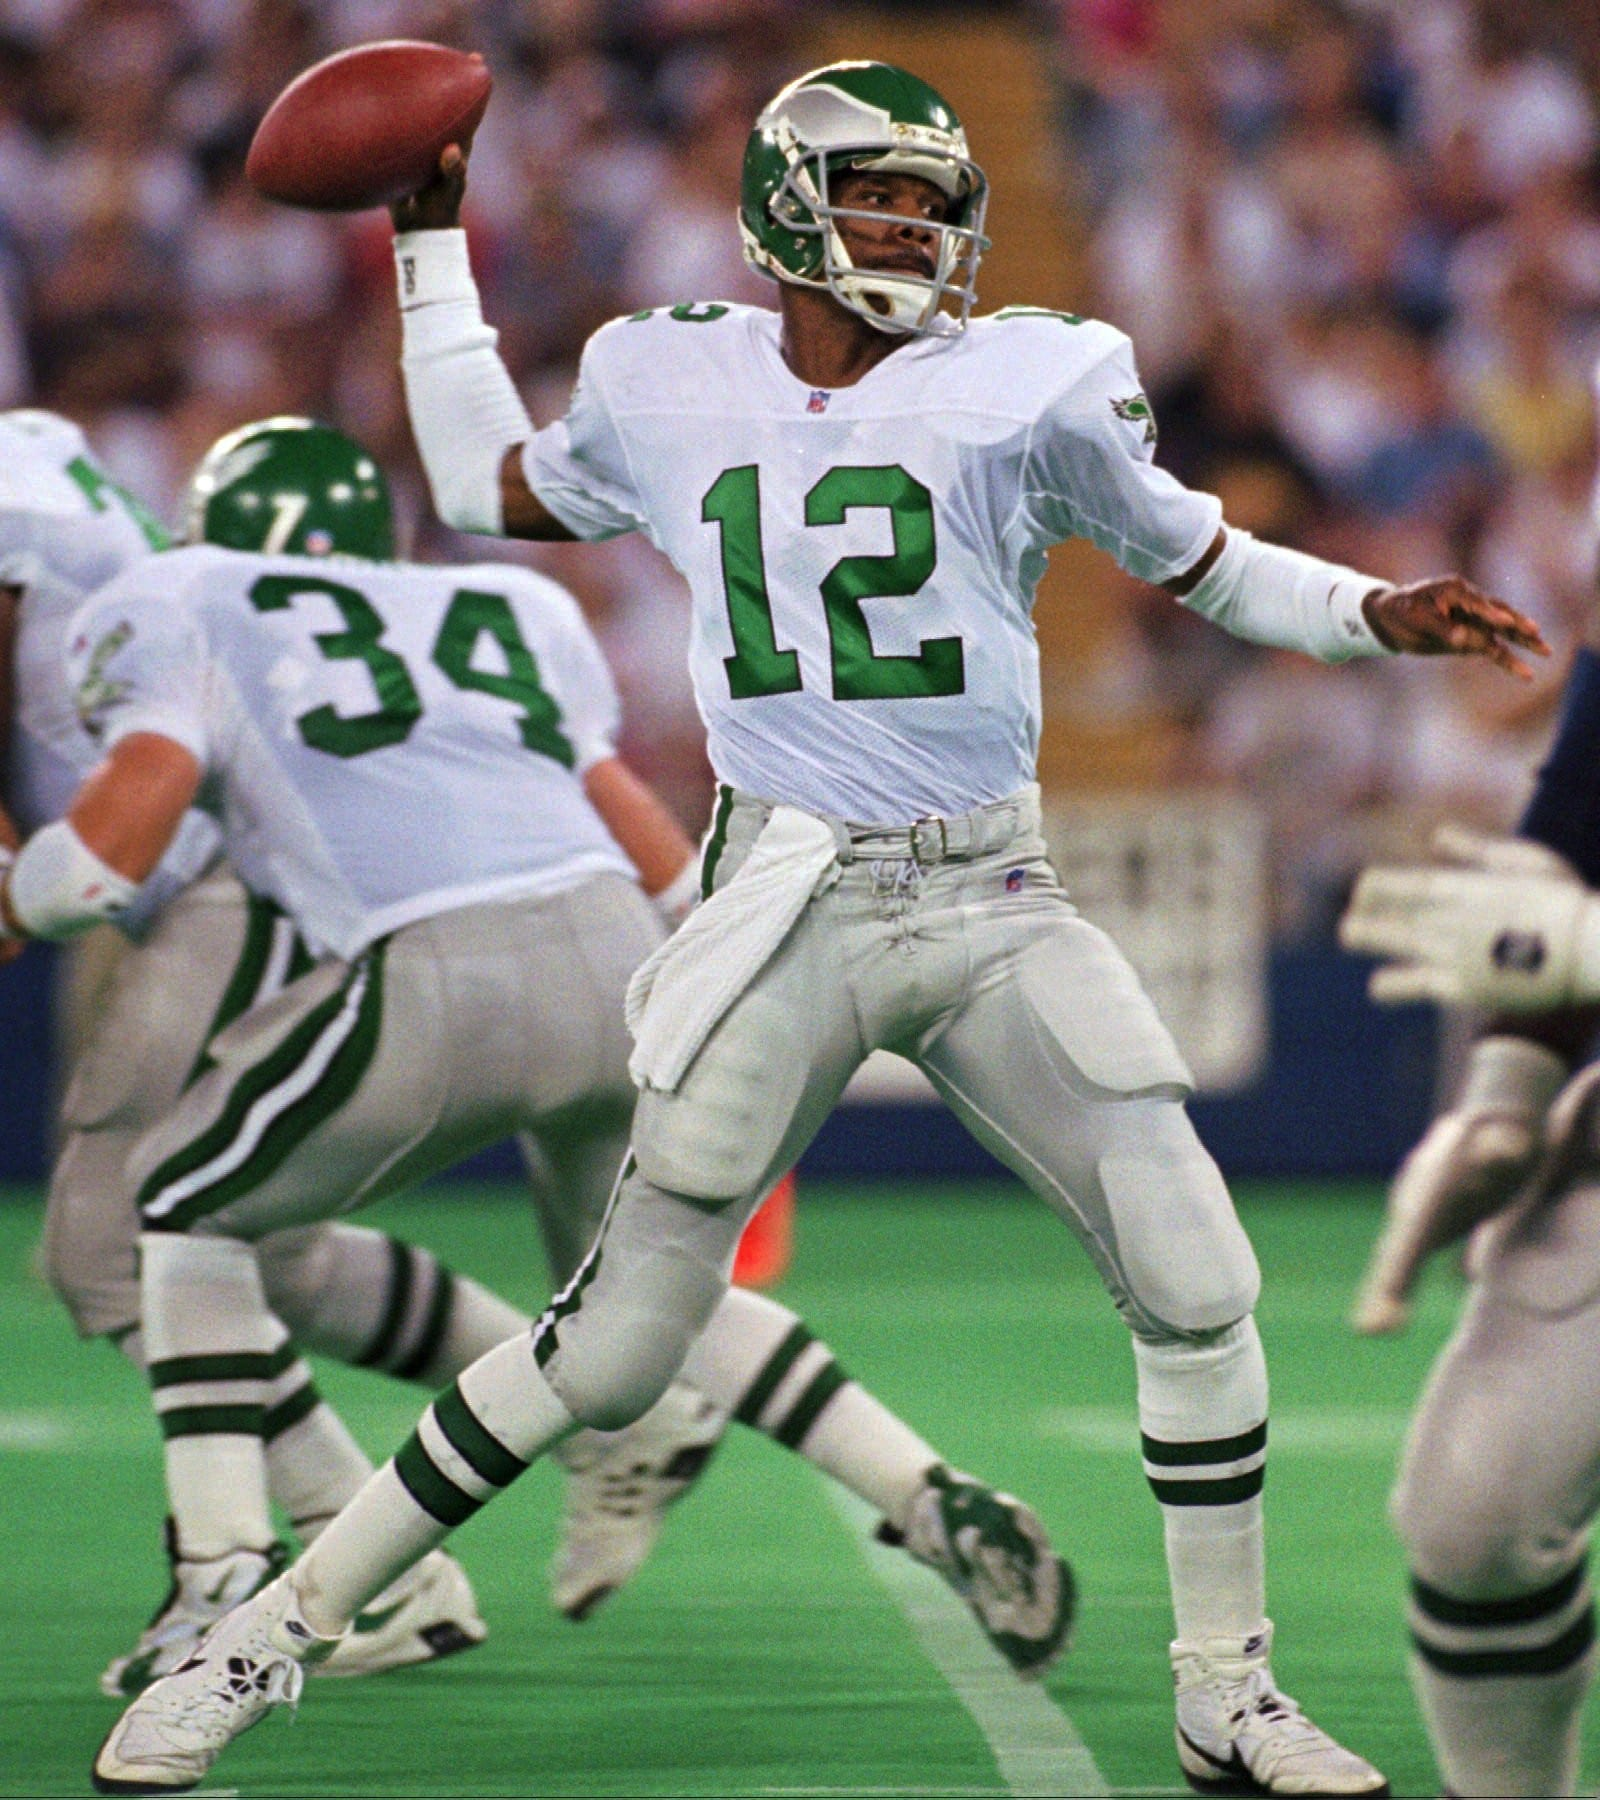 Is Randall Cunningham the best Philly QB ever? via @PhillyWhat